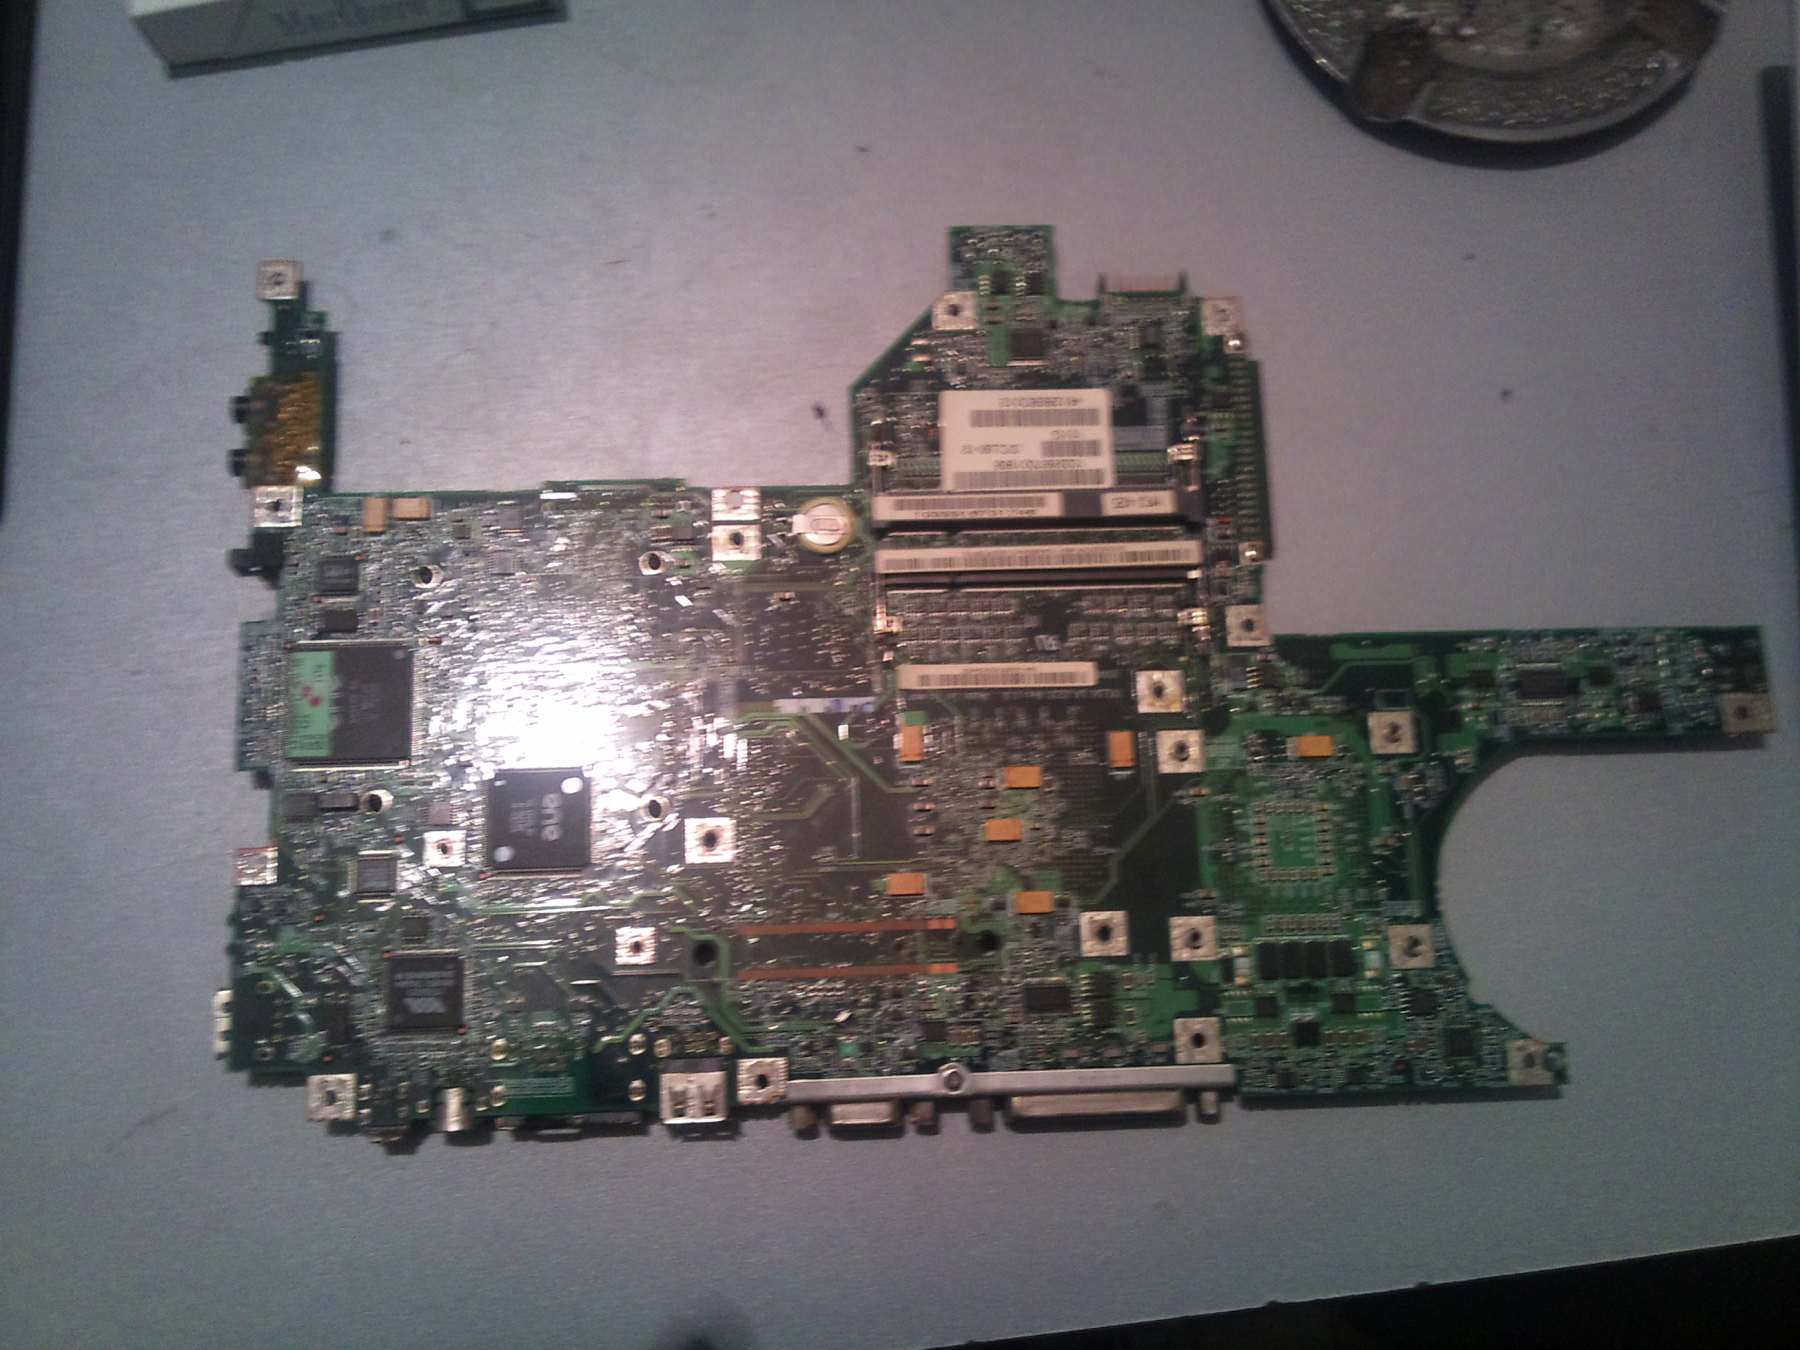 DRIVERS FOR ACER EXTENSA 2902LMI